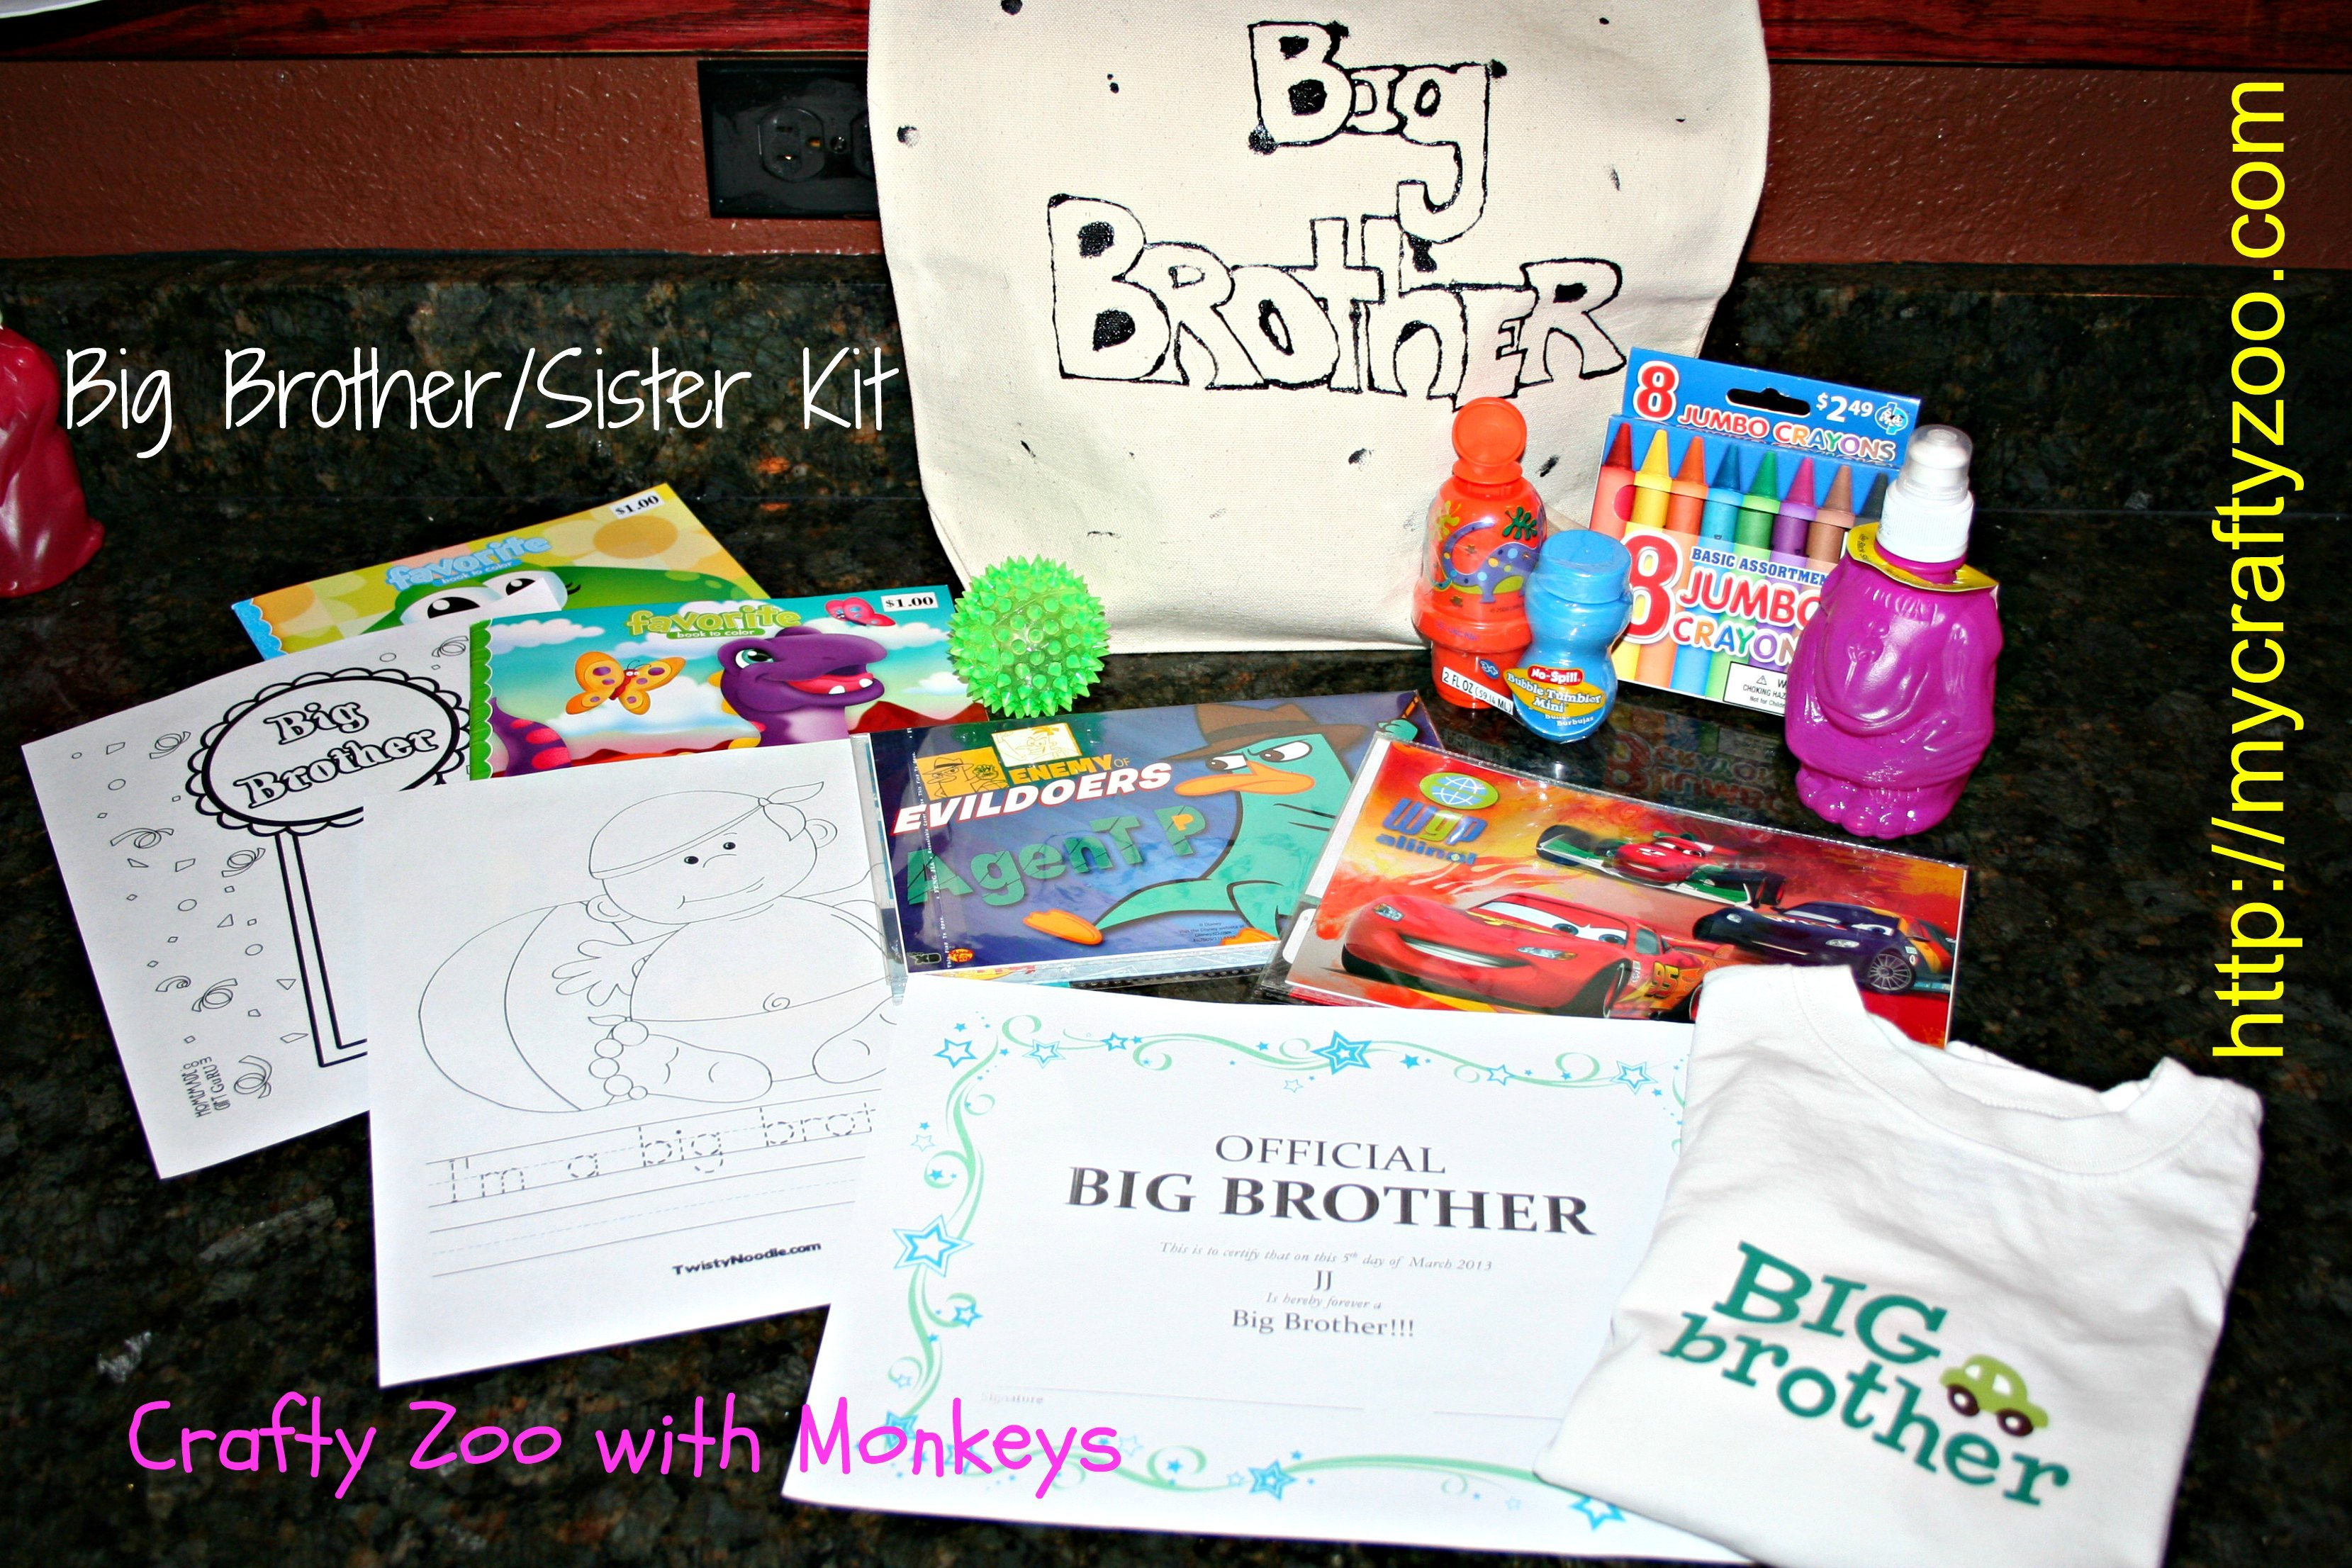 Big Brother/Big Sister Kits